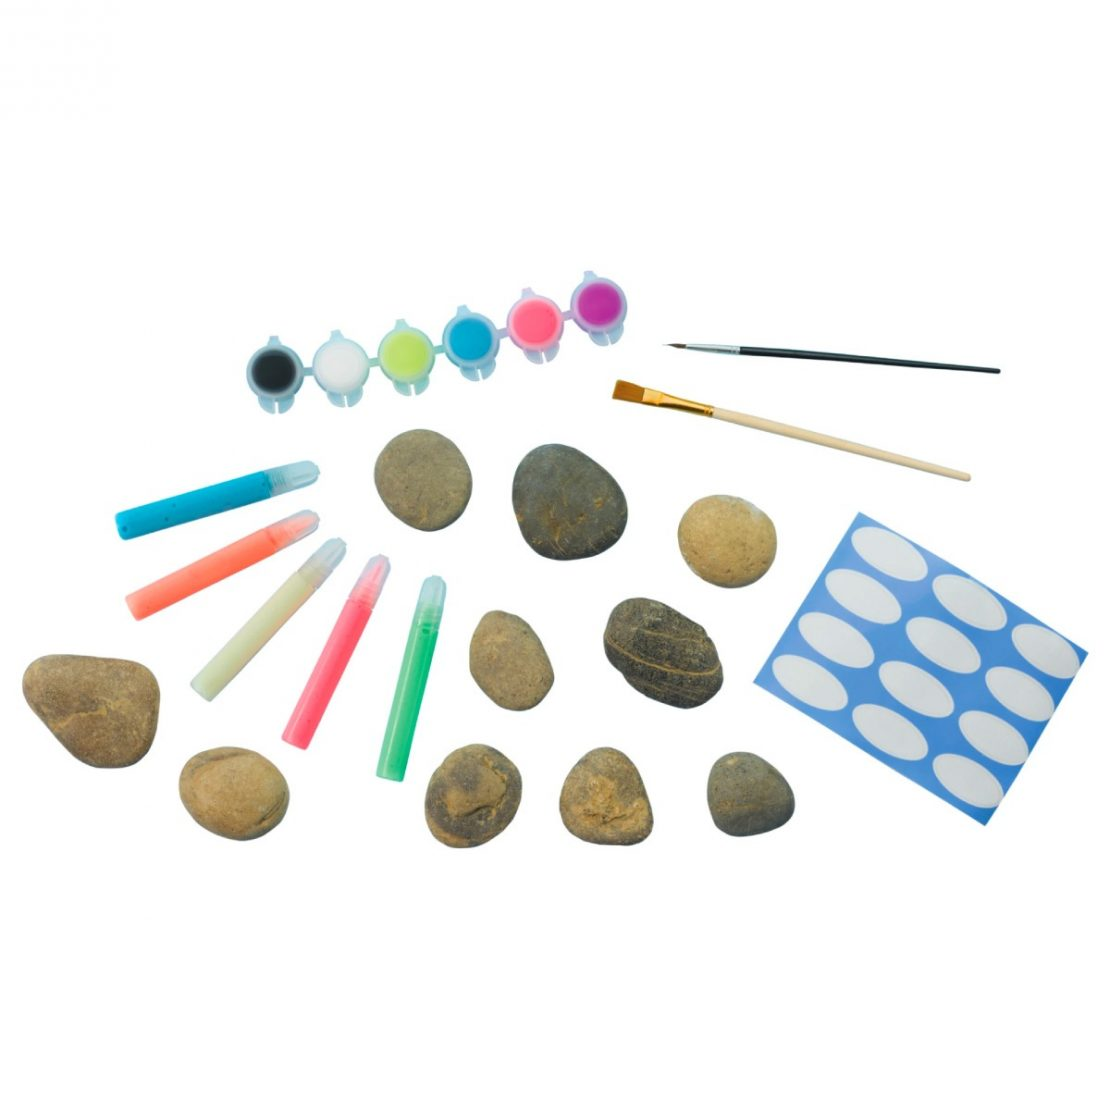 Glow in the Dark Rock Painting Kit from Creativity for Kids